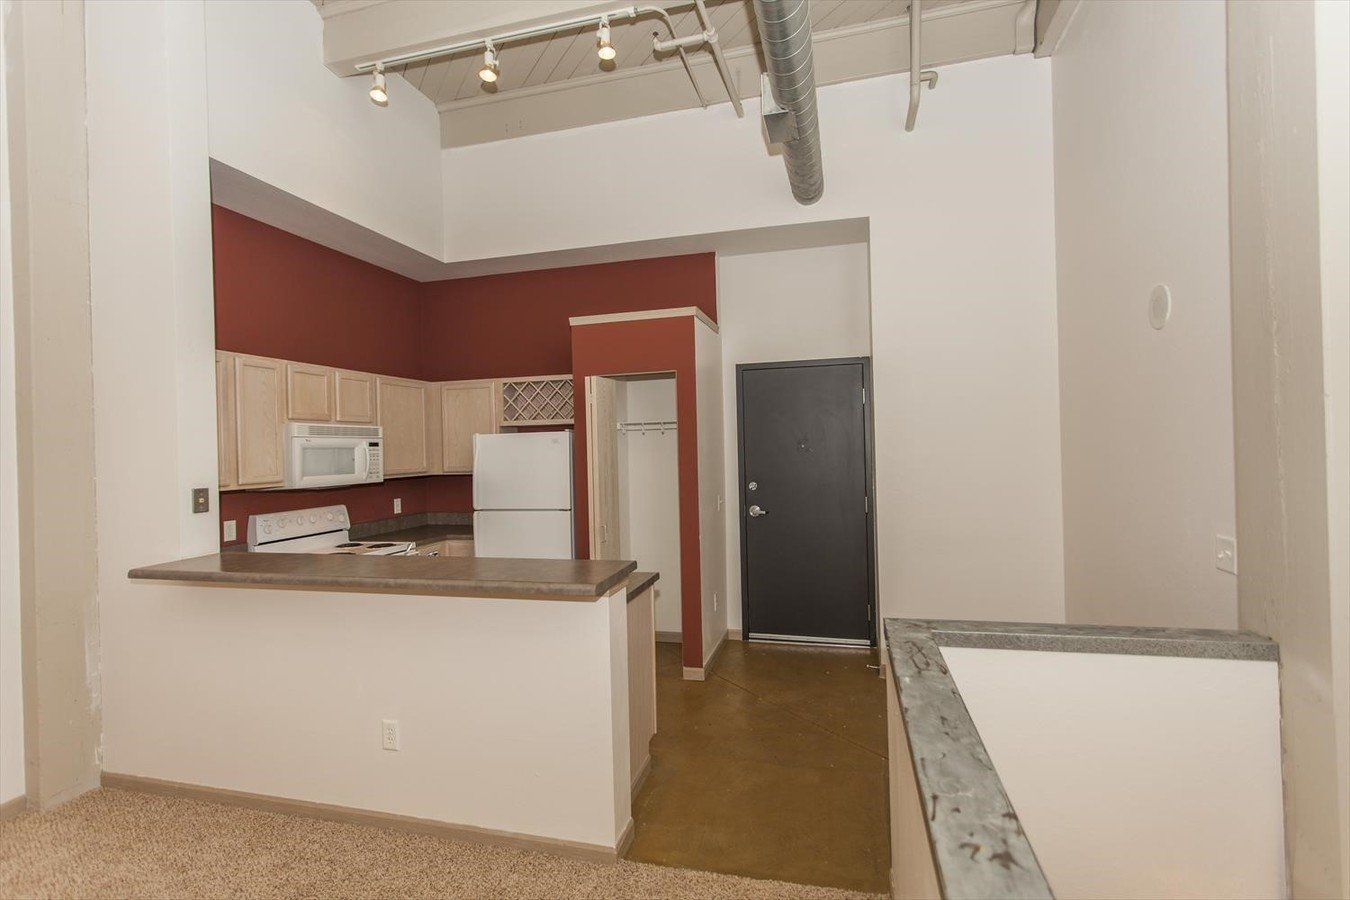 1 Bedroom 1 Bathroom Apartment for rent at Old Market Lofts in Omaha, NE